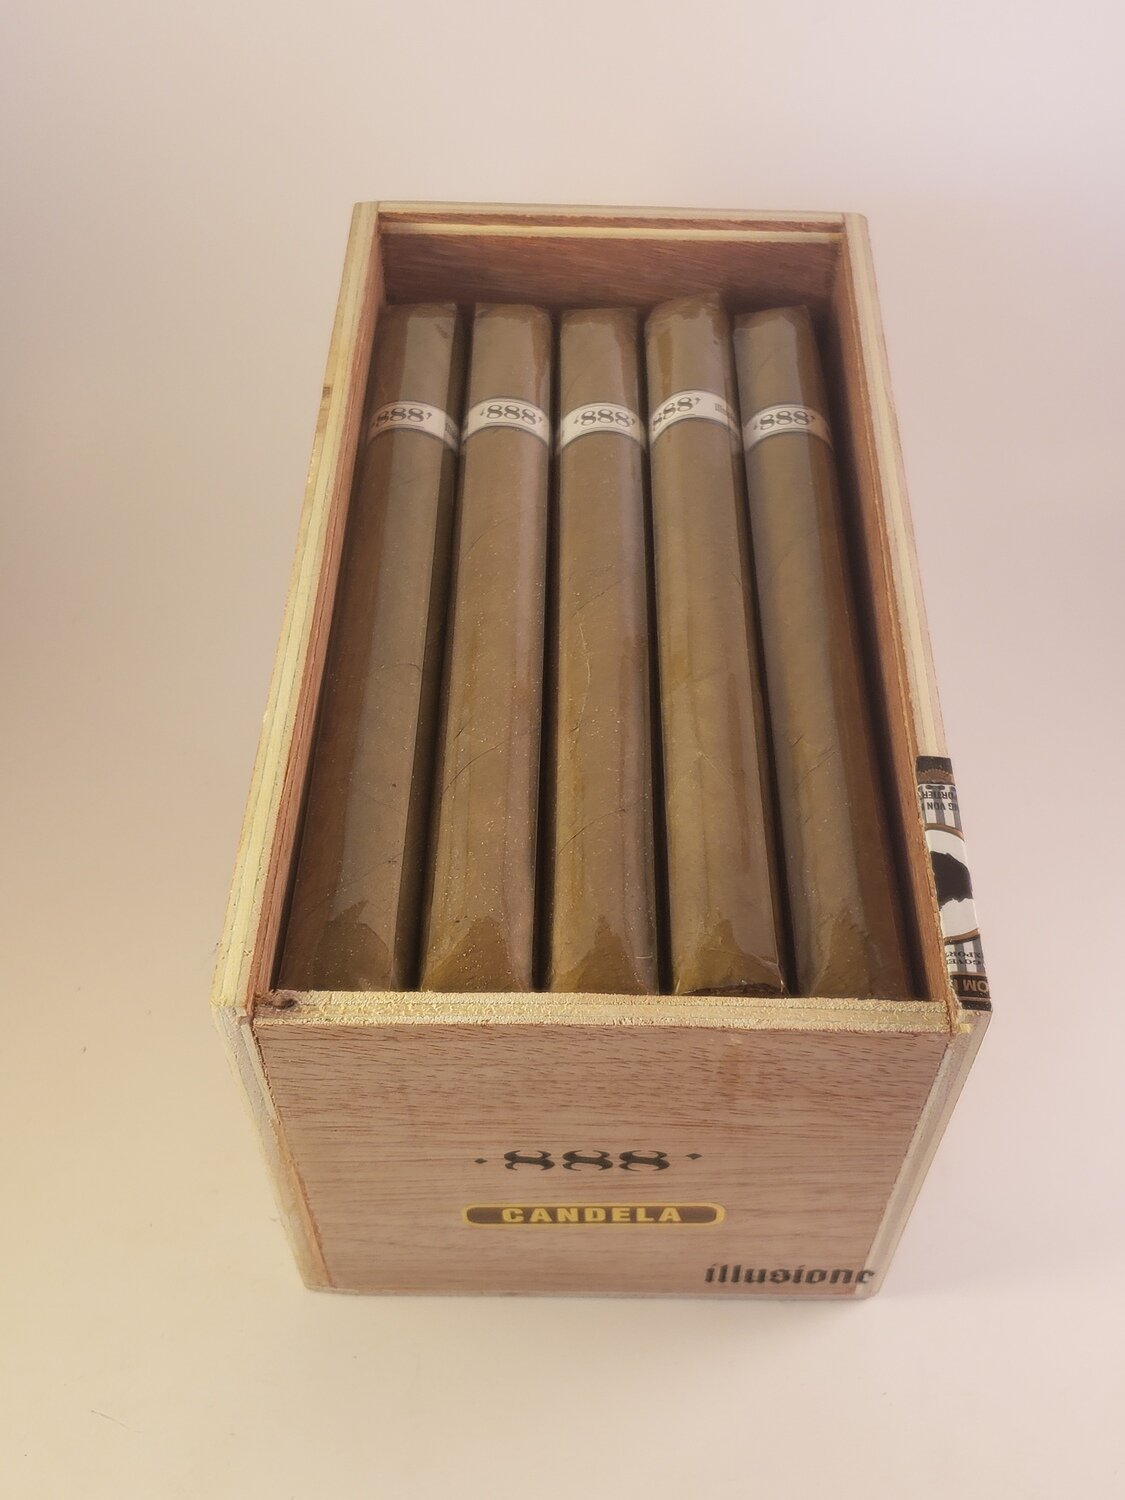 Illusione Original Documents Candela HL Lancero 7 1/2 x 40 Single Cigar